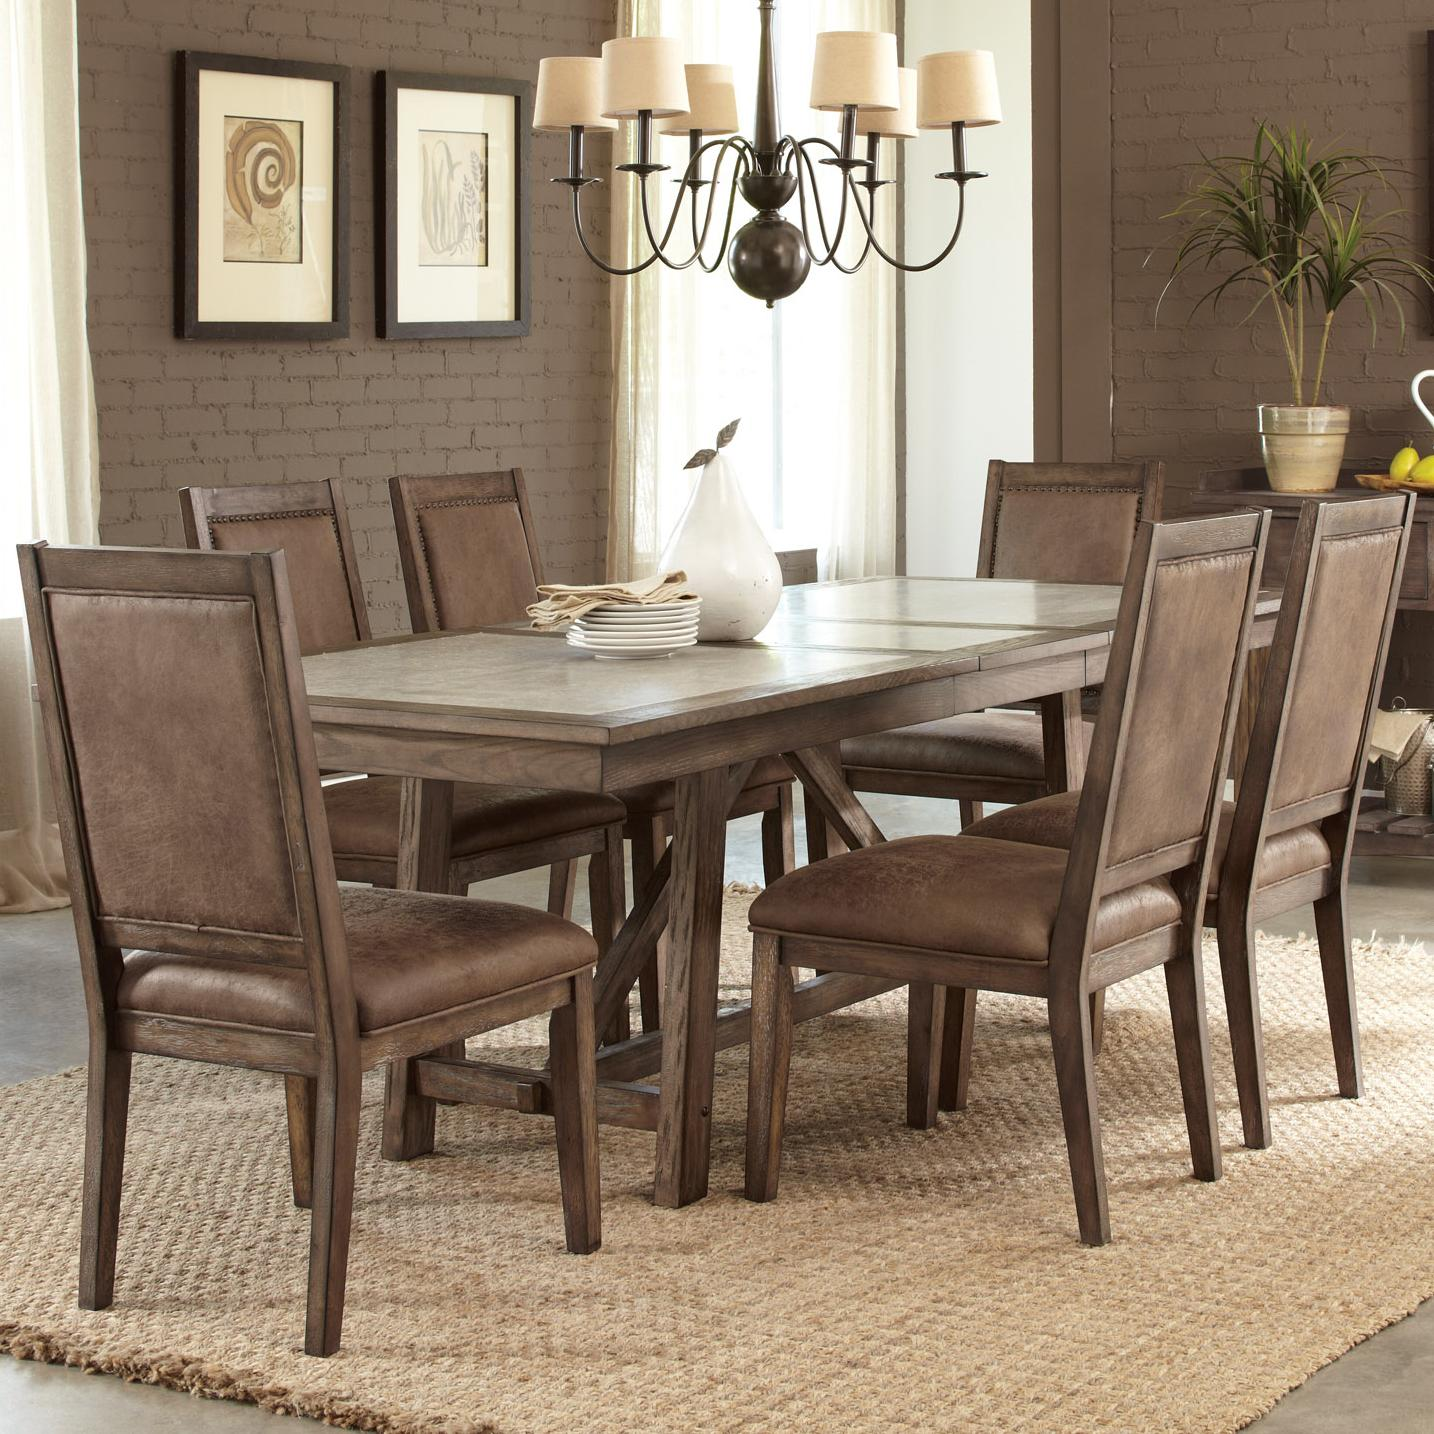 Dining Room Furniture Sets Barker: Liberty Furniture Stone Brook 466-DR-7TRS Casual 7 Piece